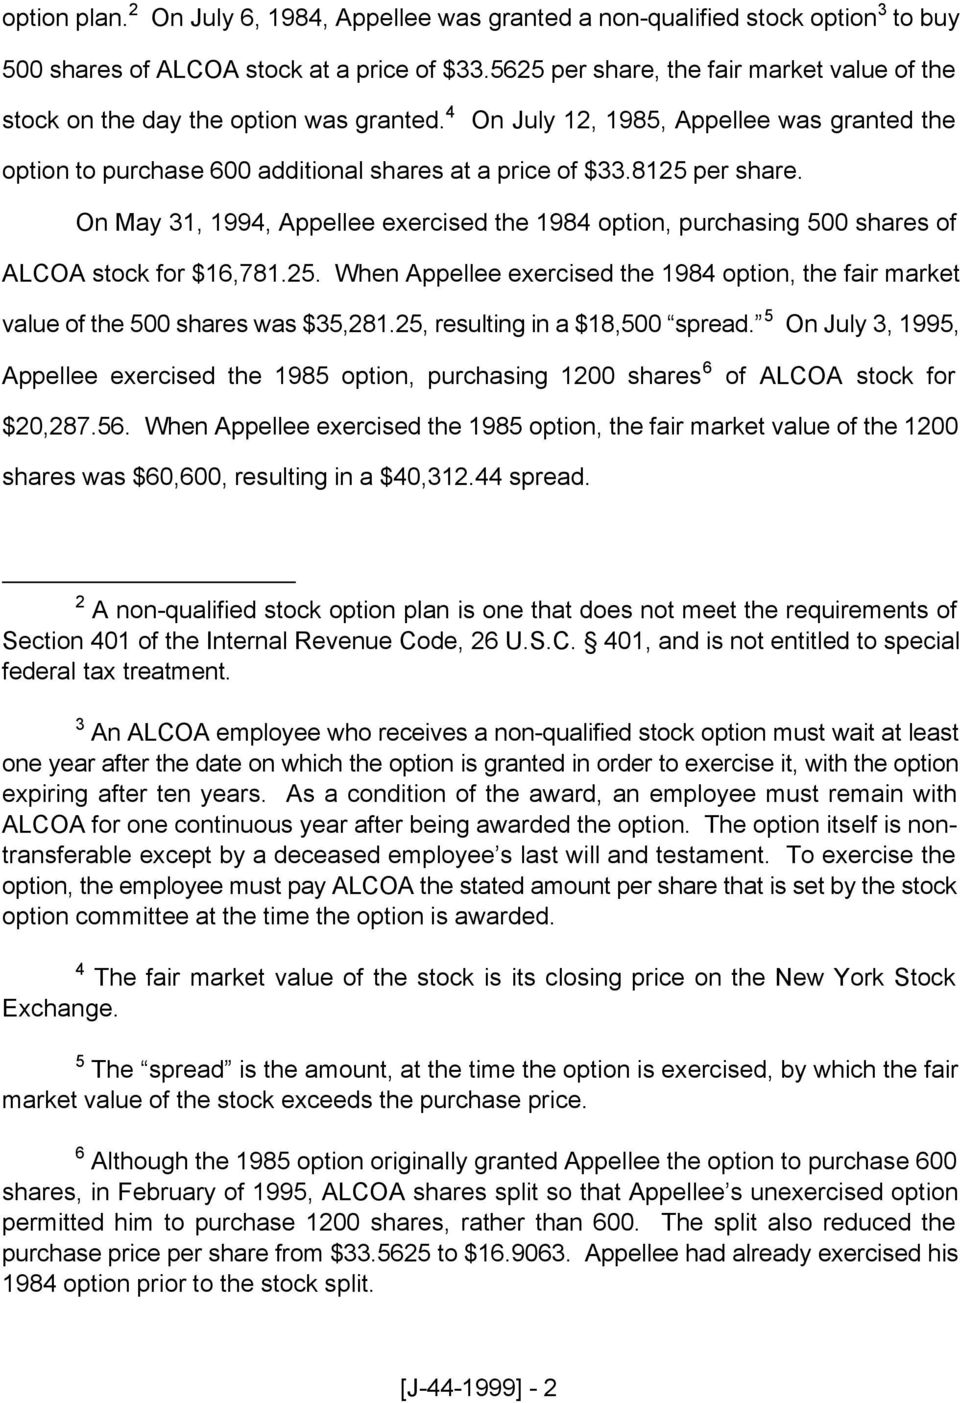 8125 per share. On May 31, 1994, Appellee exercised the 1984 option, purchasing 500 shares of ALCOA stock for $16,781.25. When Appellee exercised the 1984 option, the fair market value of the 500 shares was $35,281.